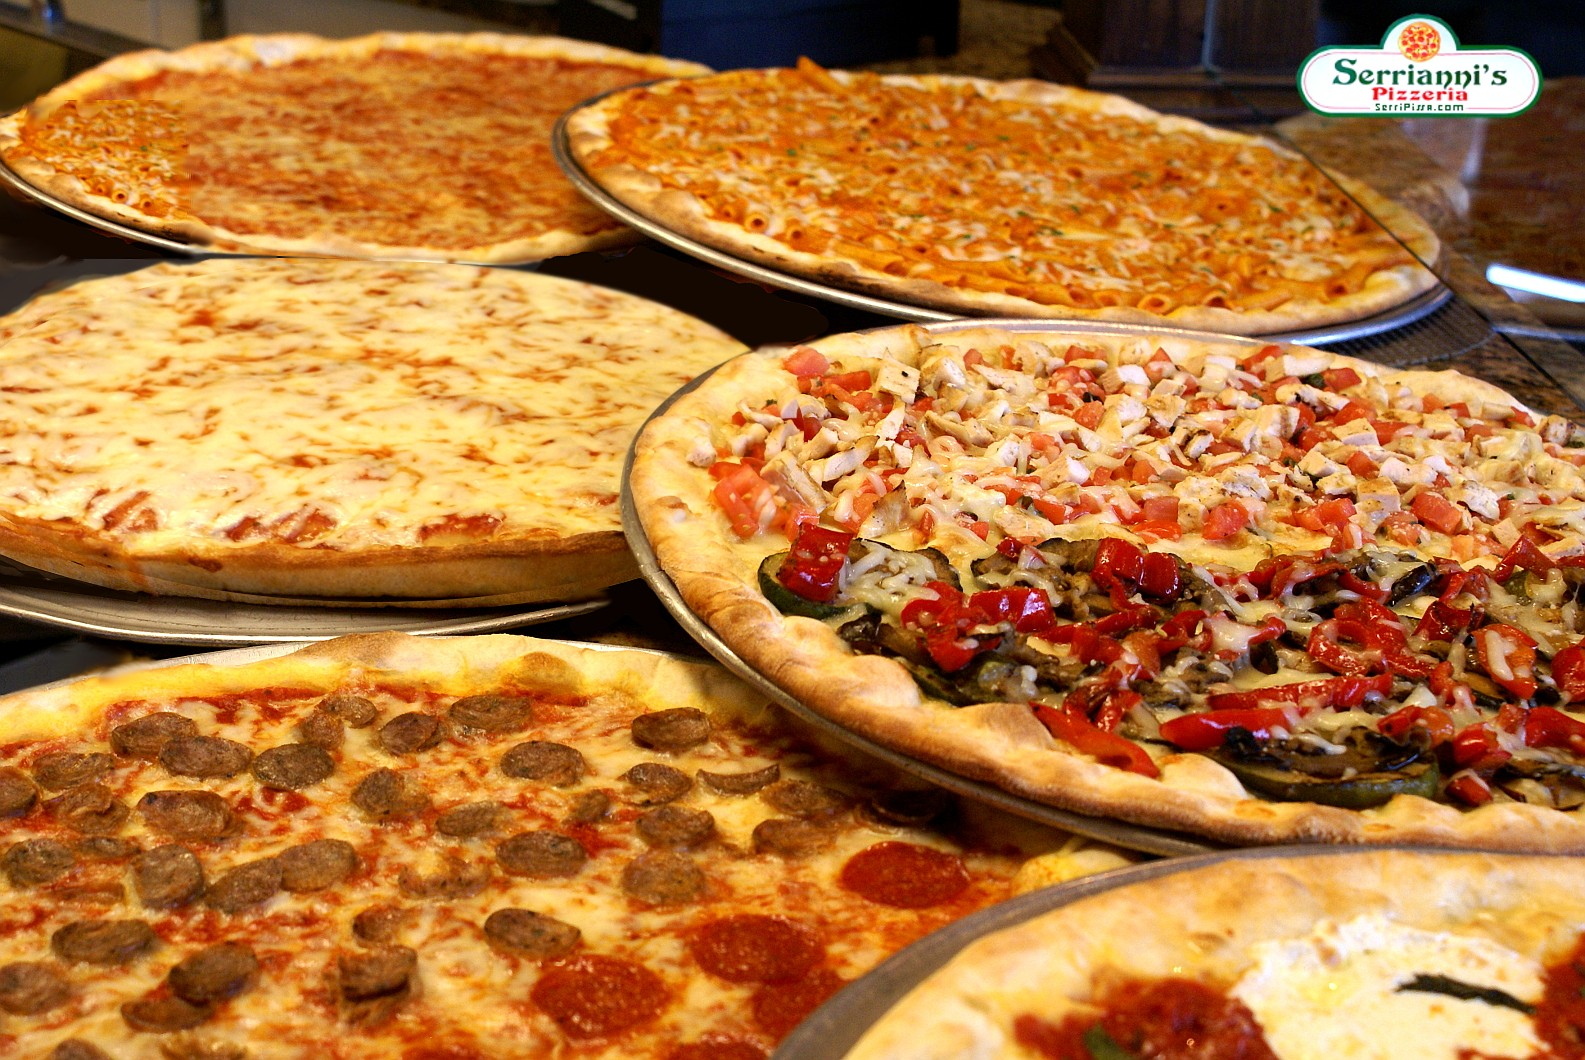 A delicious looking assortment of 6 pizza